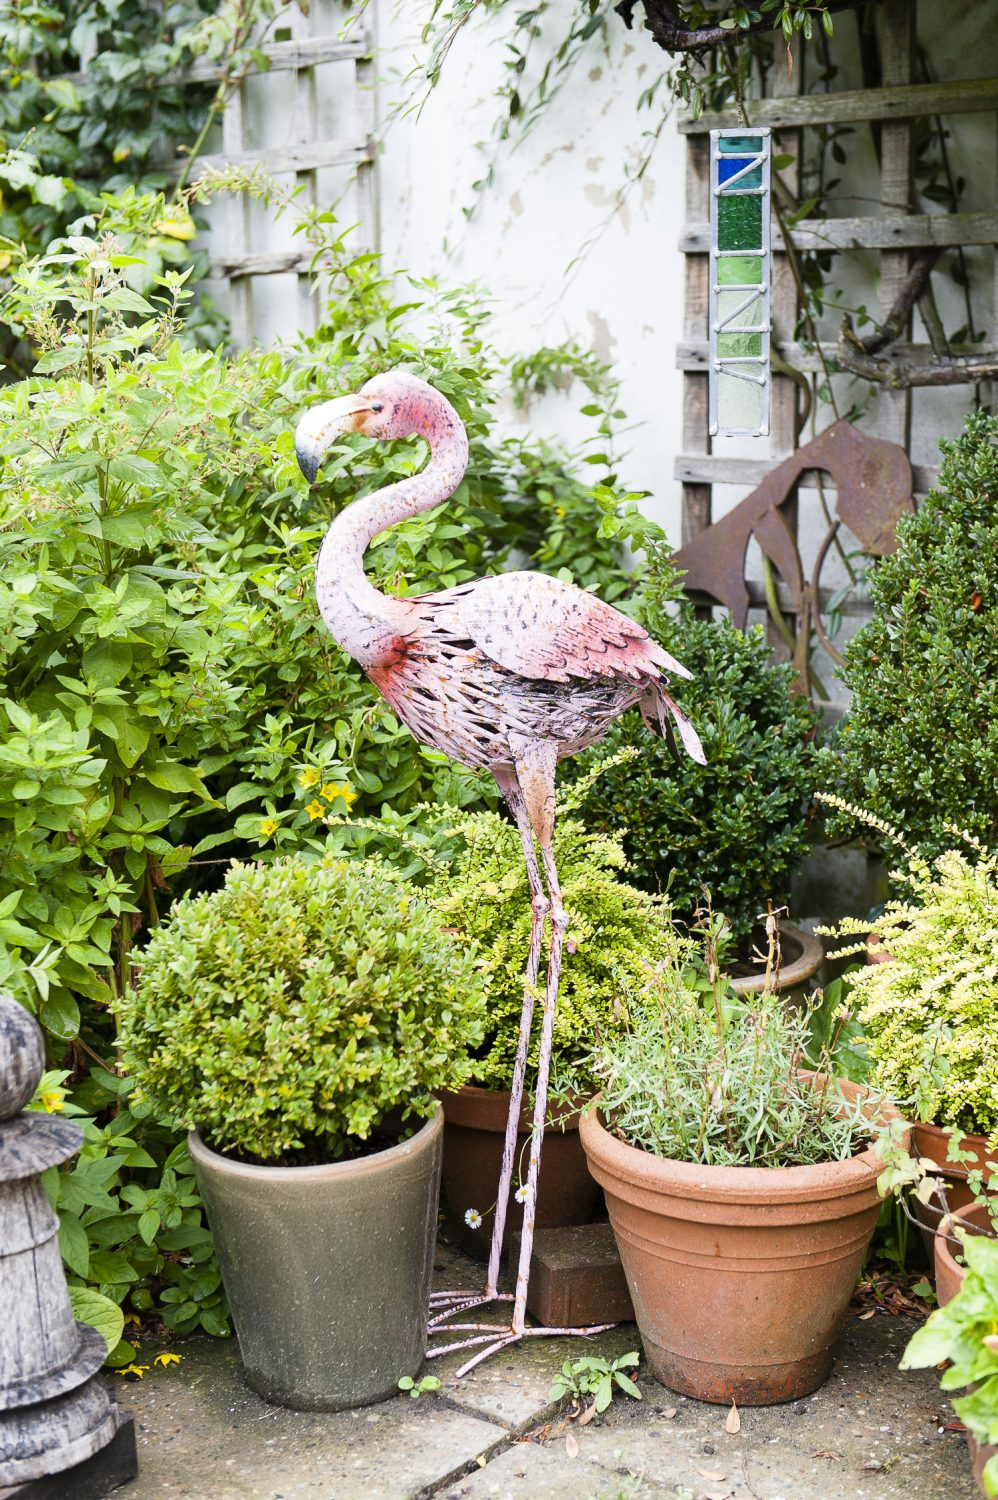 A flamingo keeps an eye on the garden